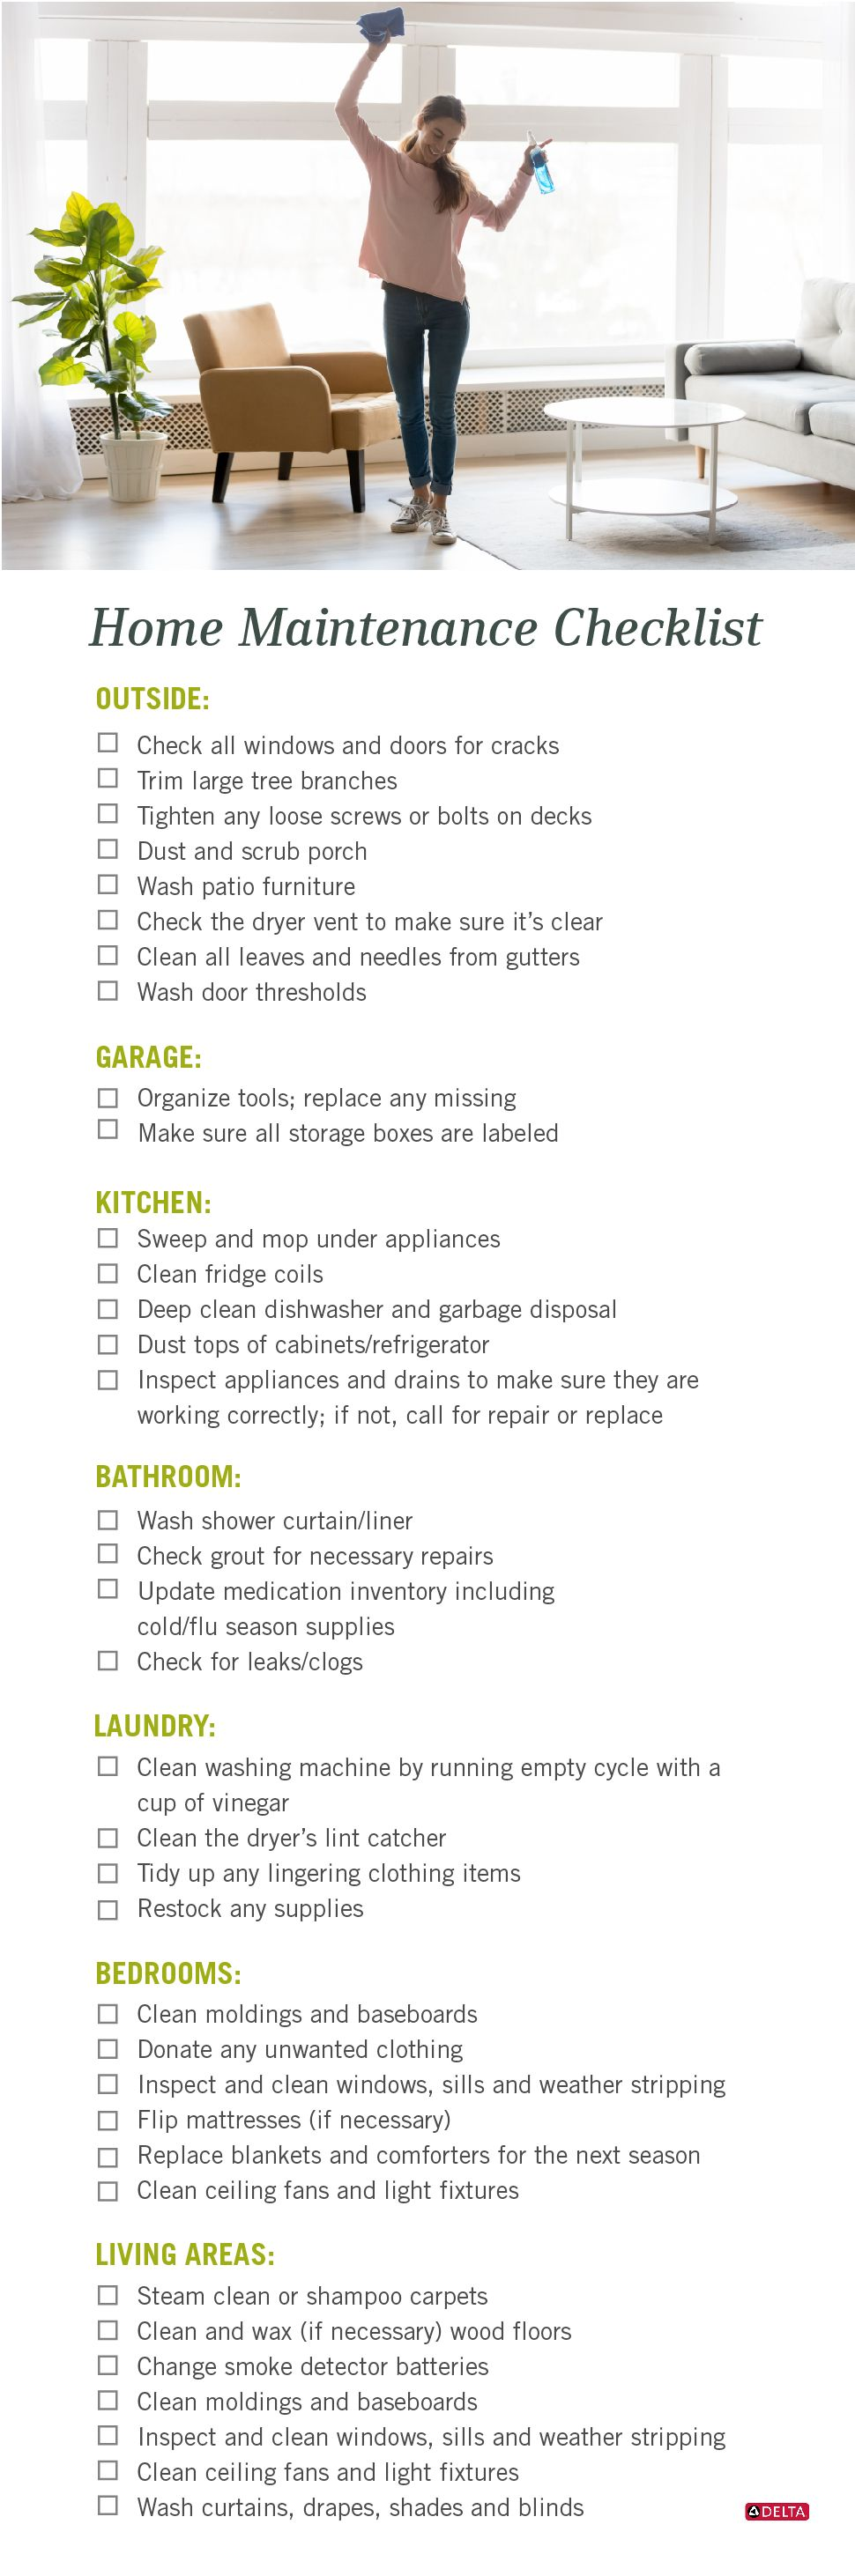 Home Maintenance Checklist - Printable | Delta Faucet